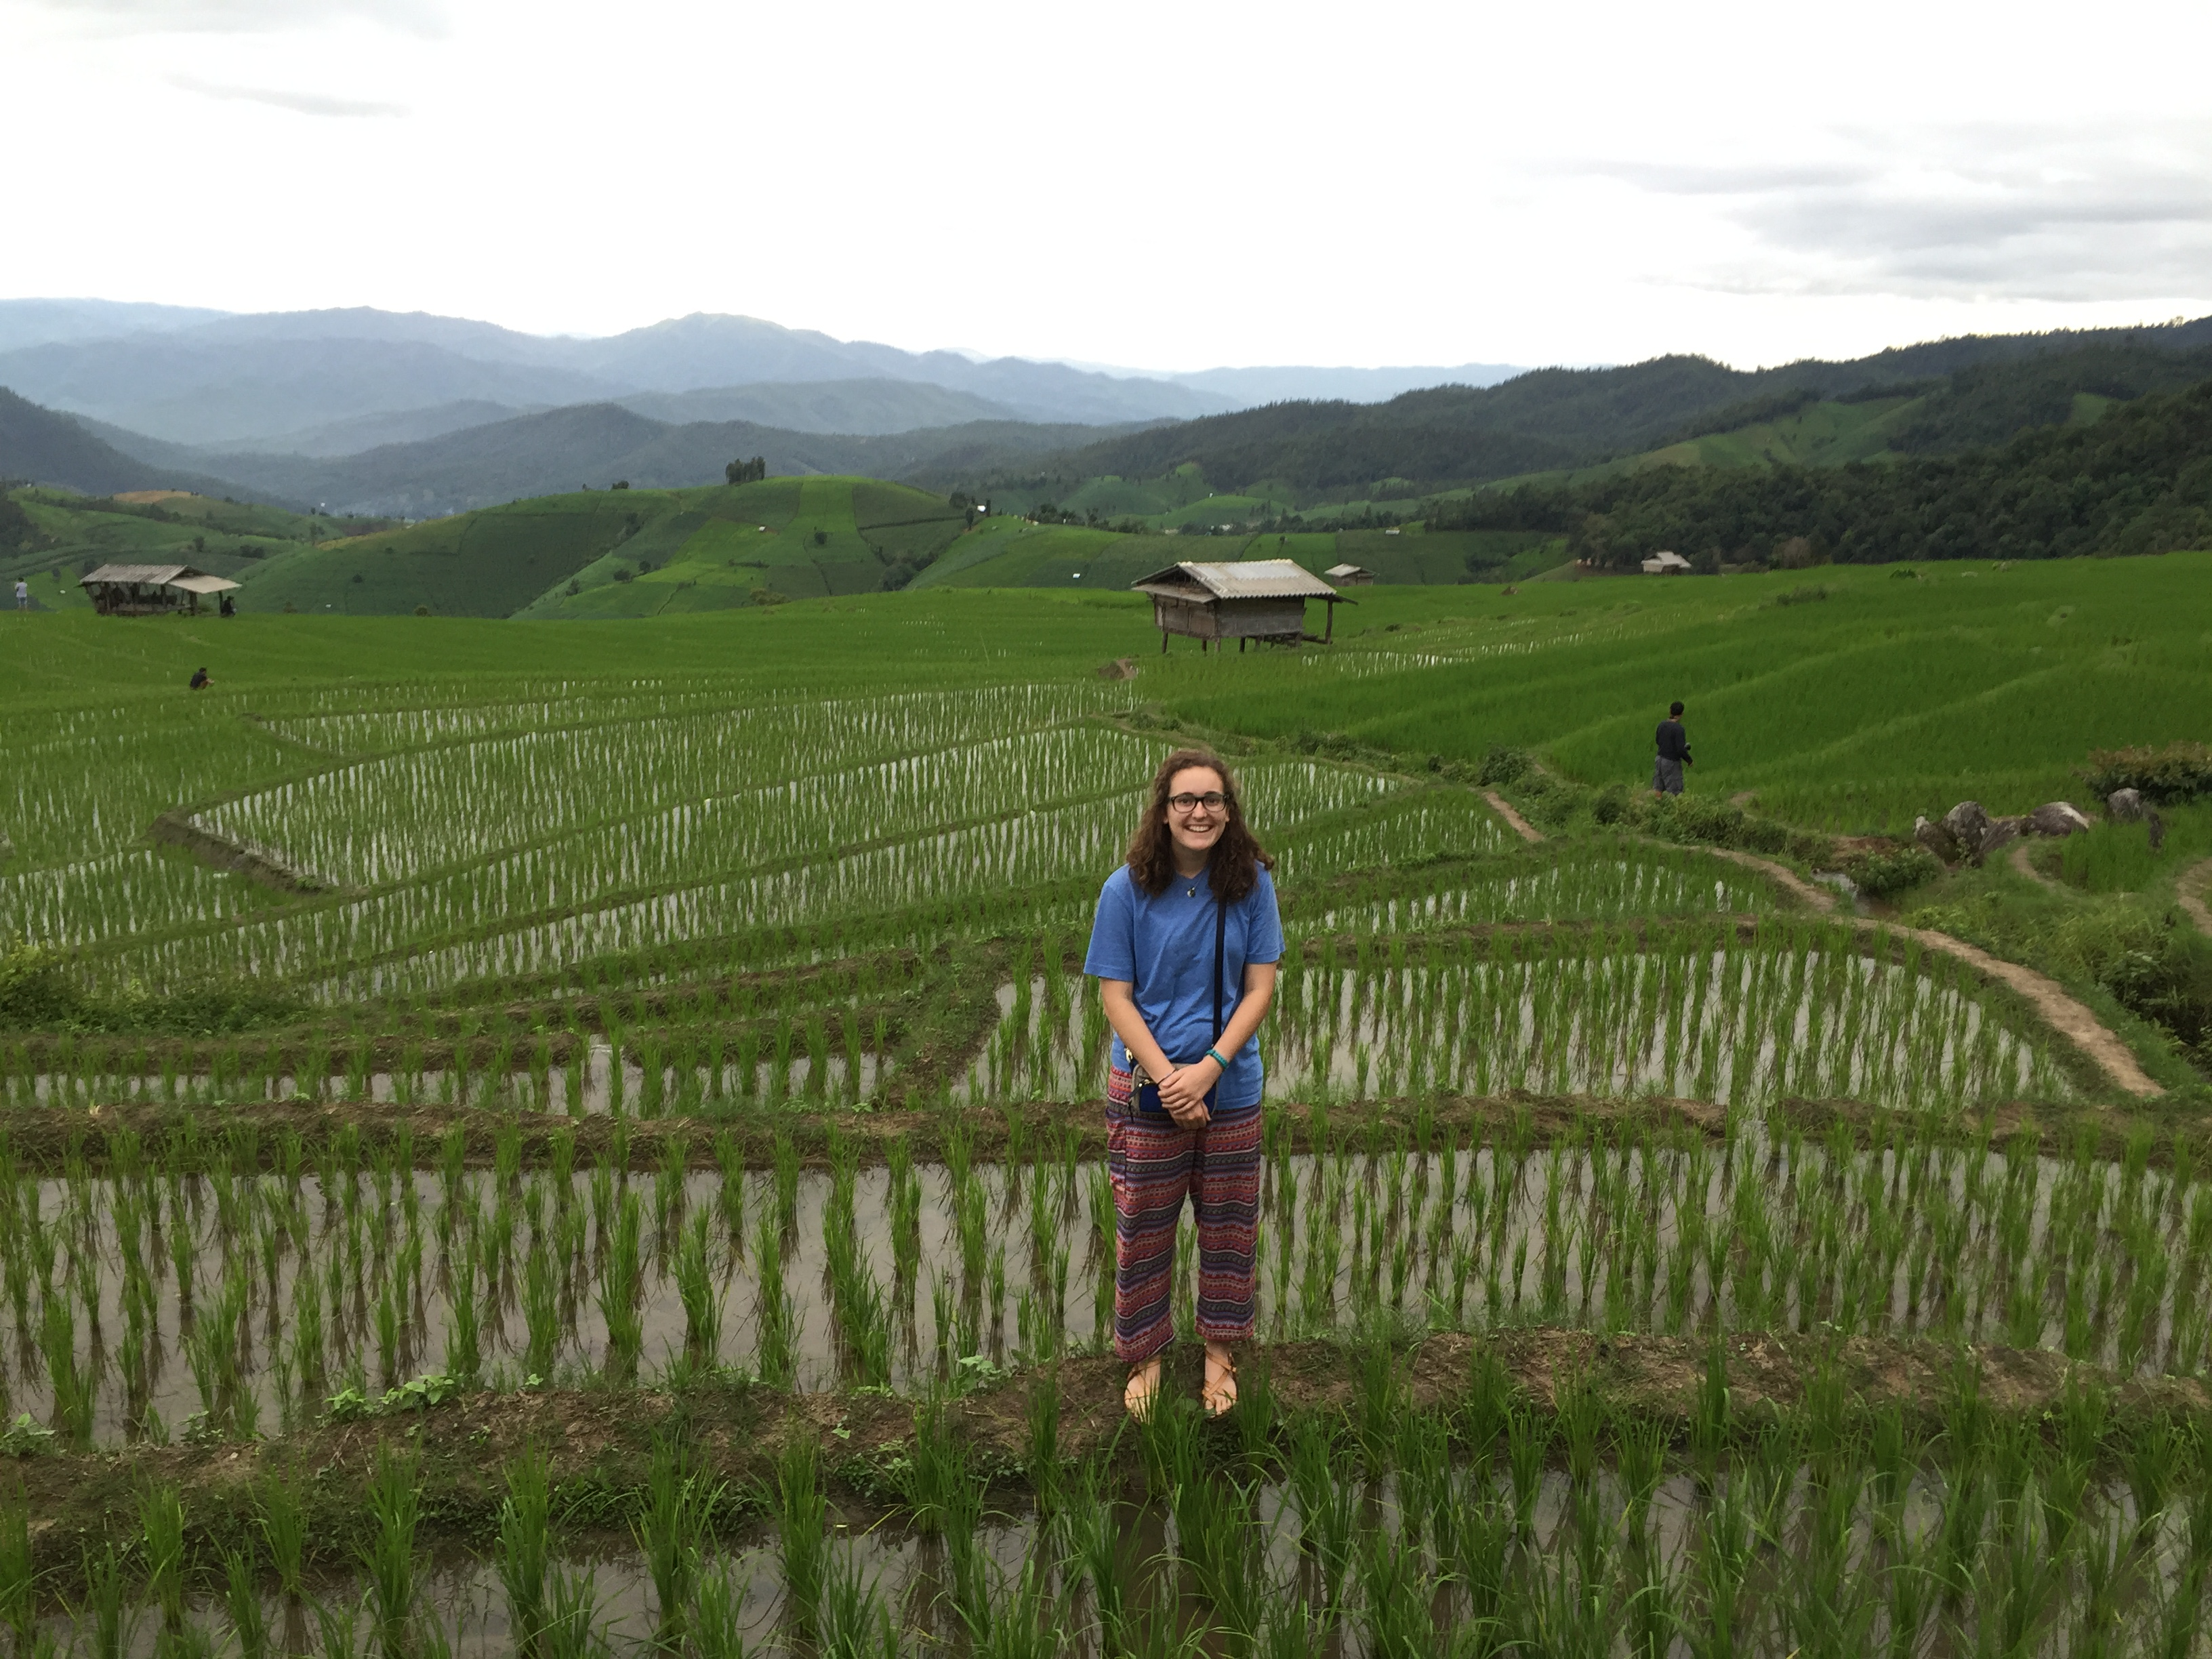 Abby Lorentz spent part of her summer in Thailand. Submitted photo.